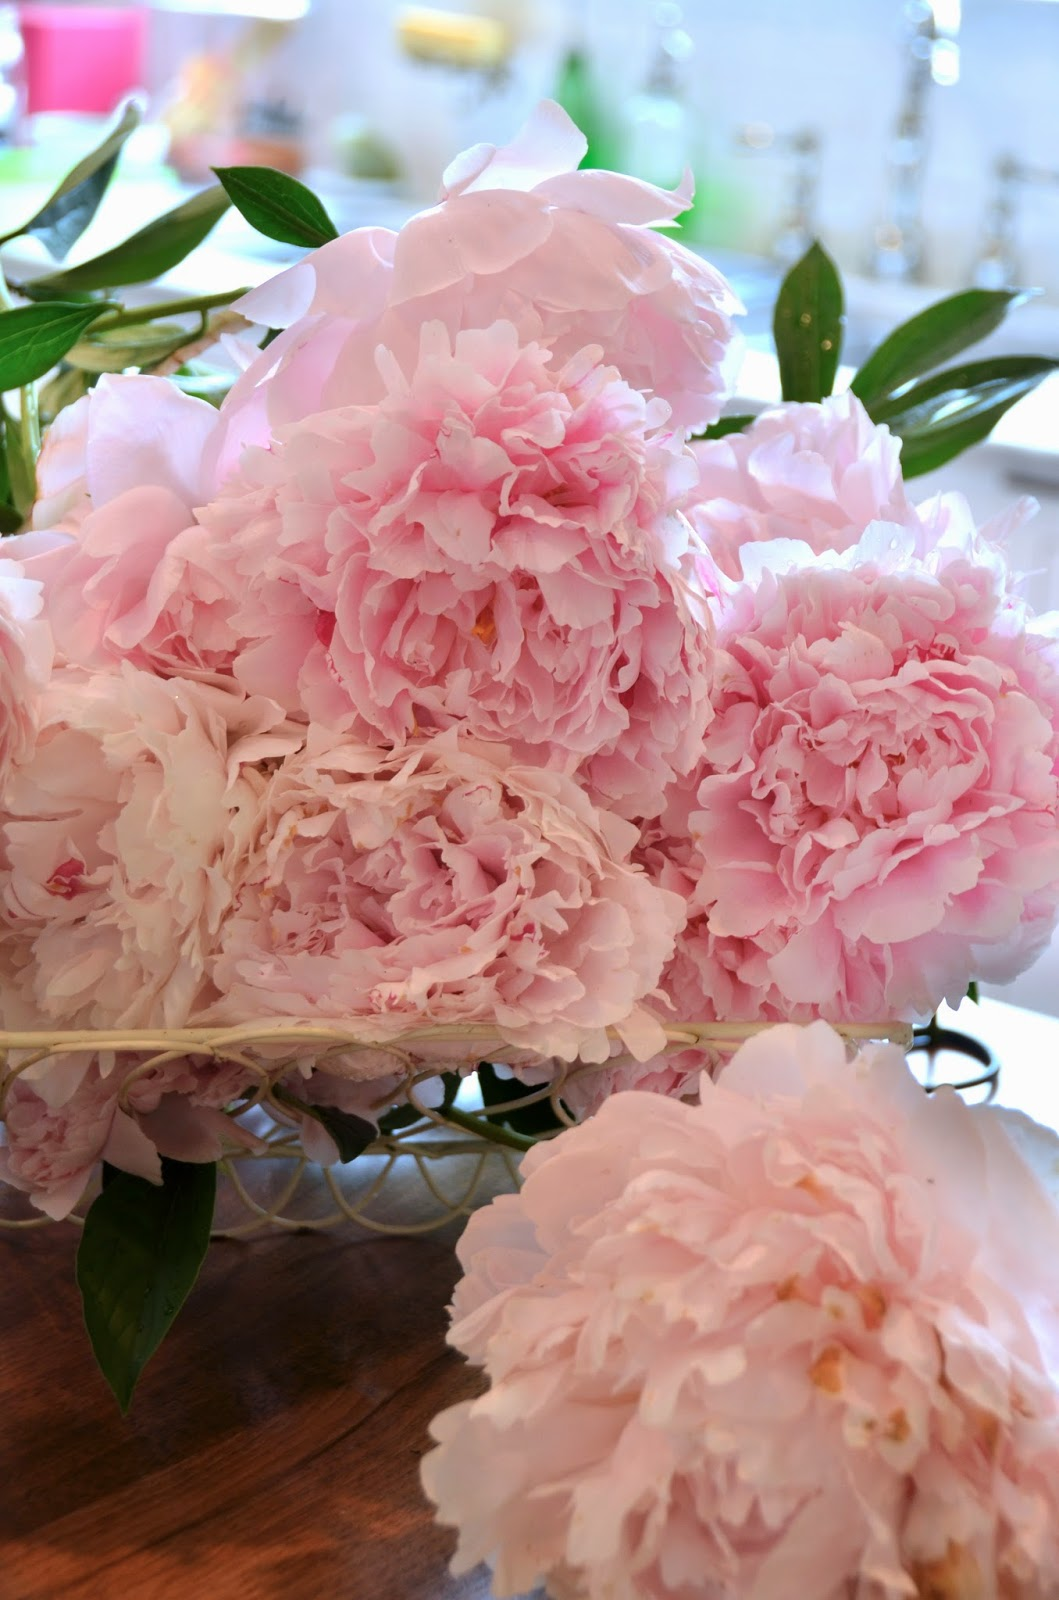 Peonies Season the princess and the frog blog: peony season